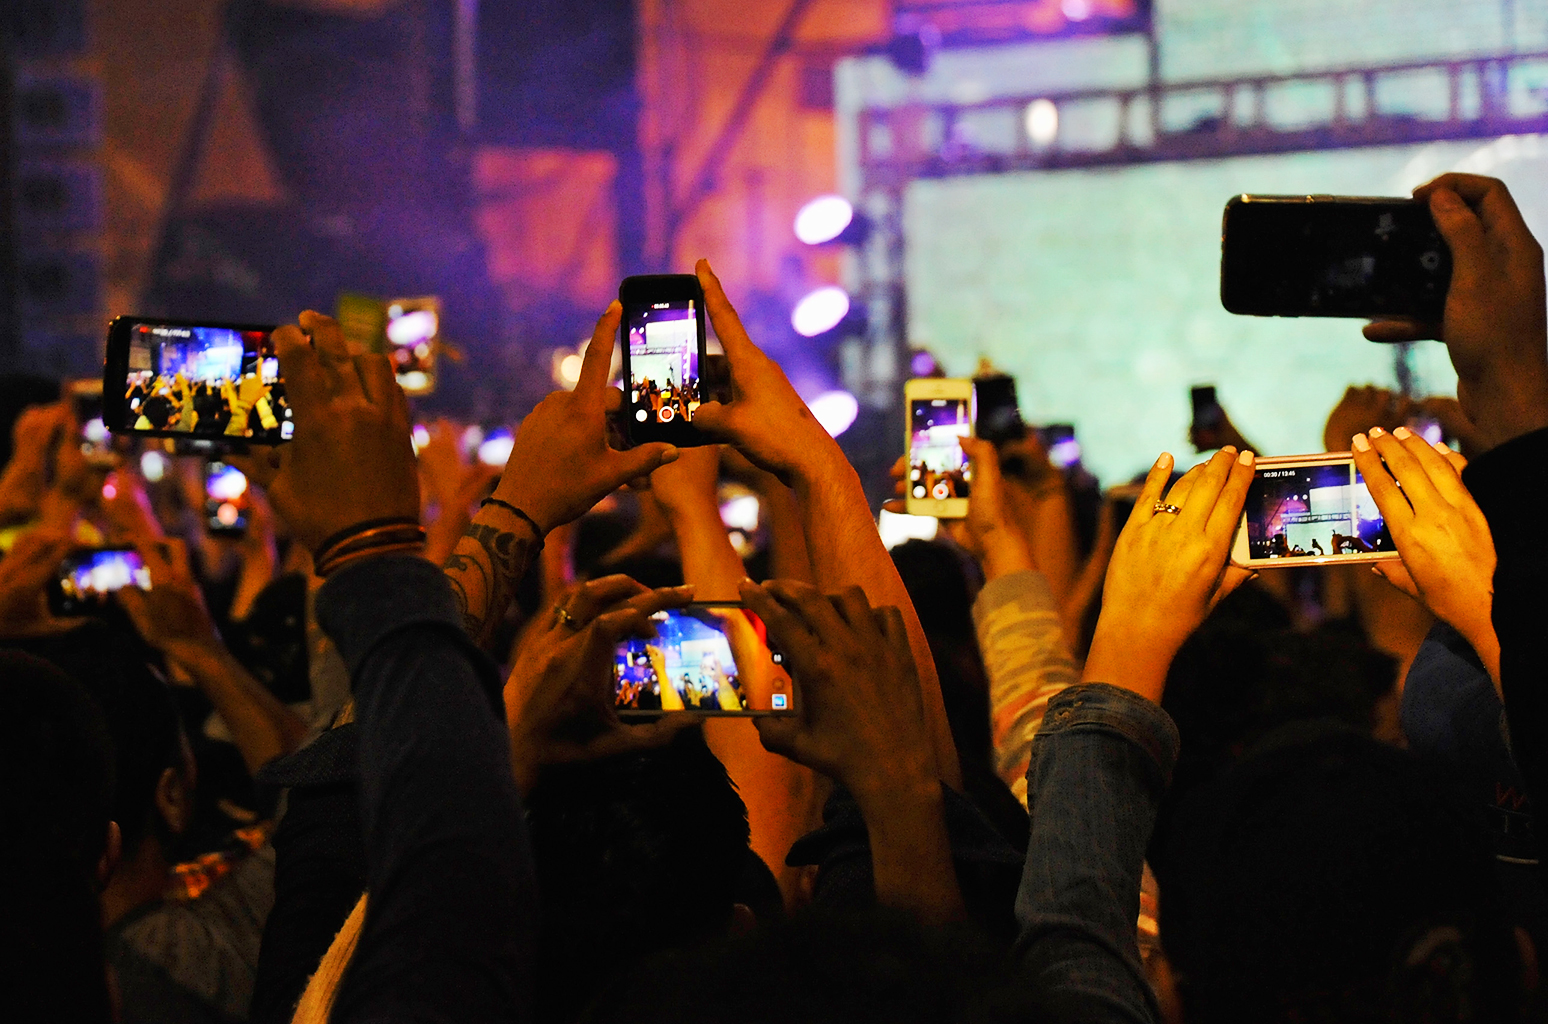 Phone-free Concerts